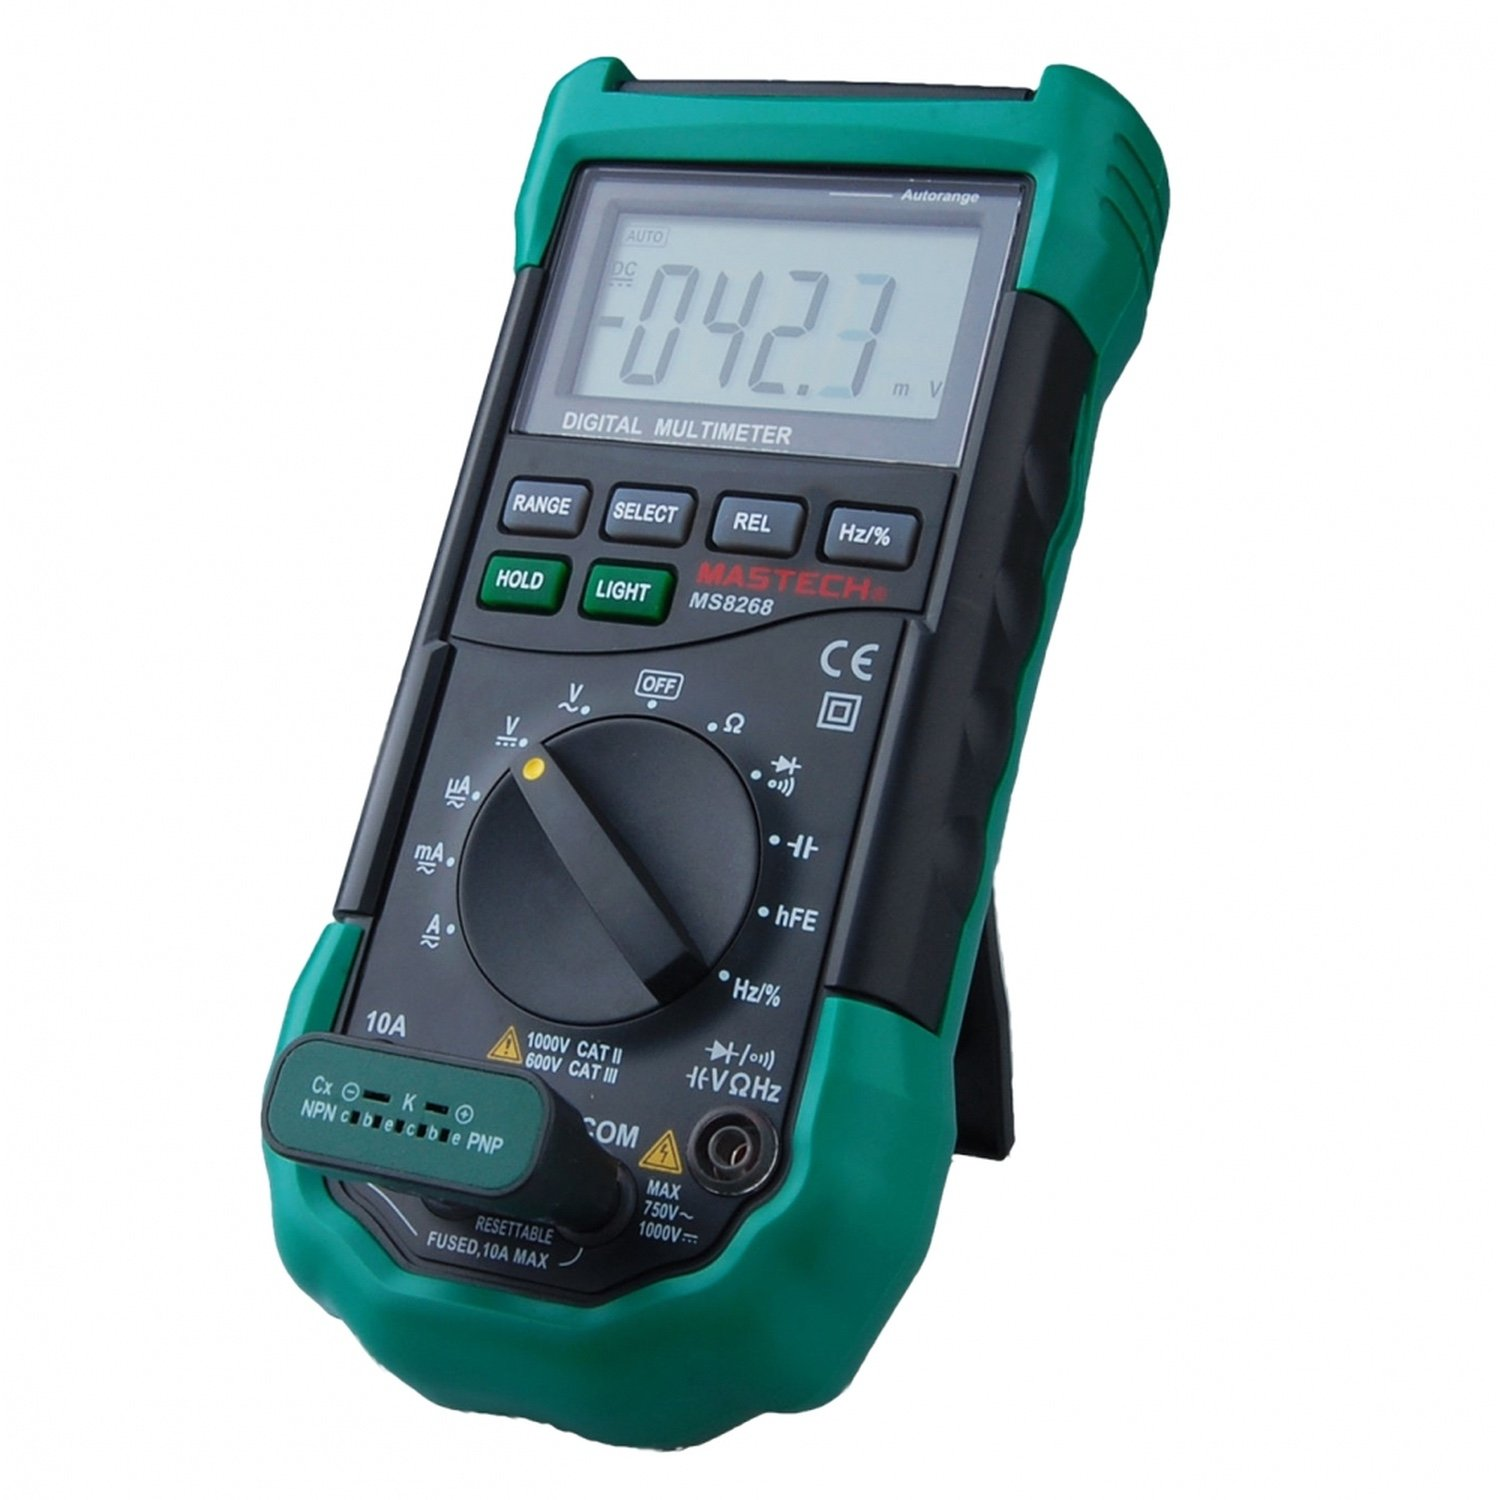 Mastech MS8268-Digital Multimeter 3 3/4 Digital Autoranging AC/DC/phew/Hz multimeter tester